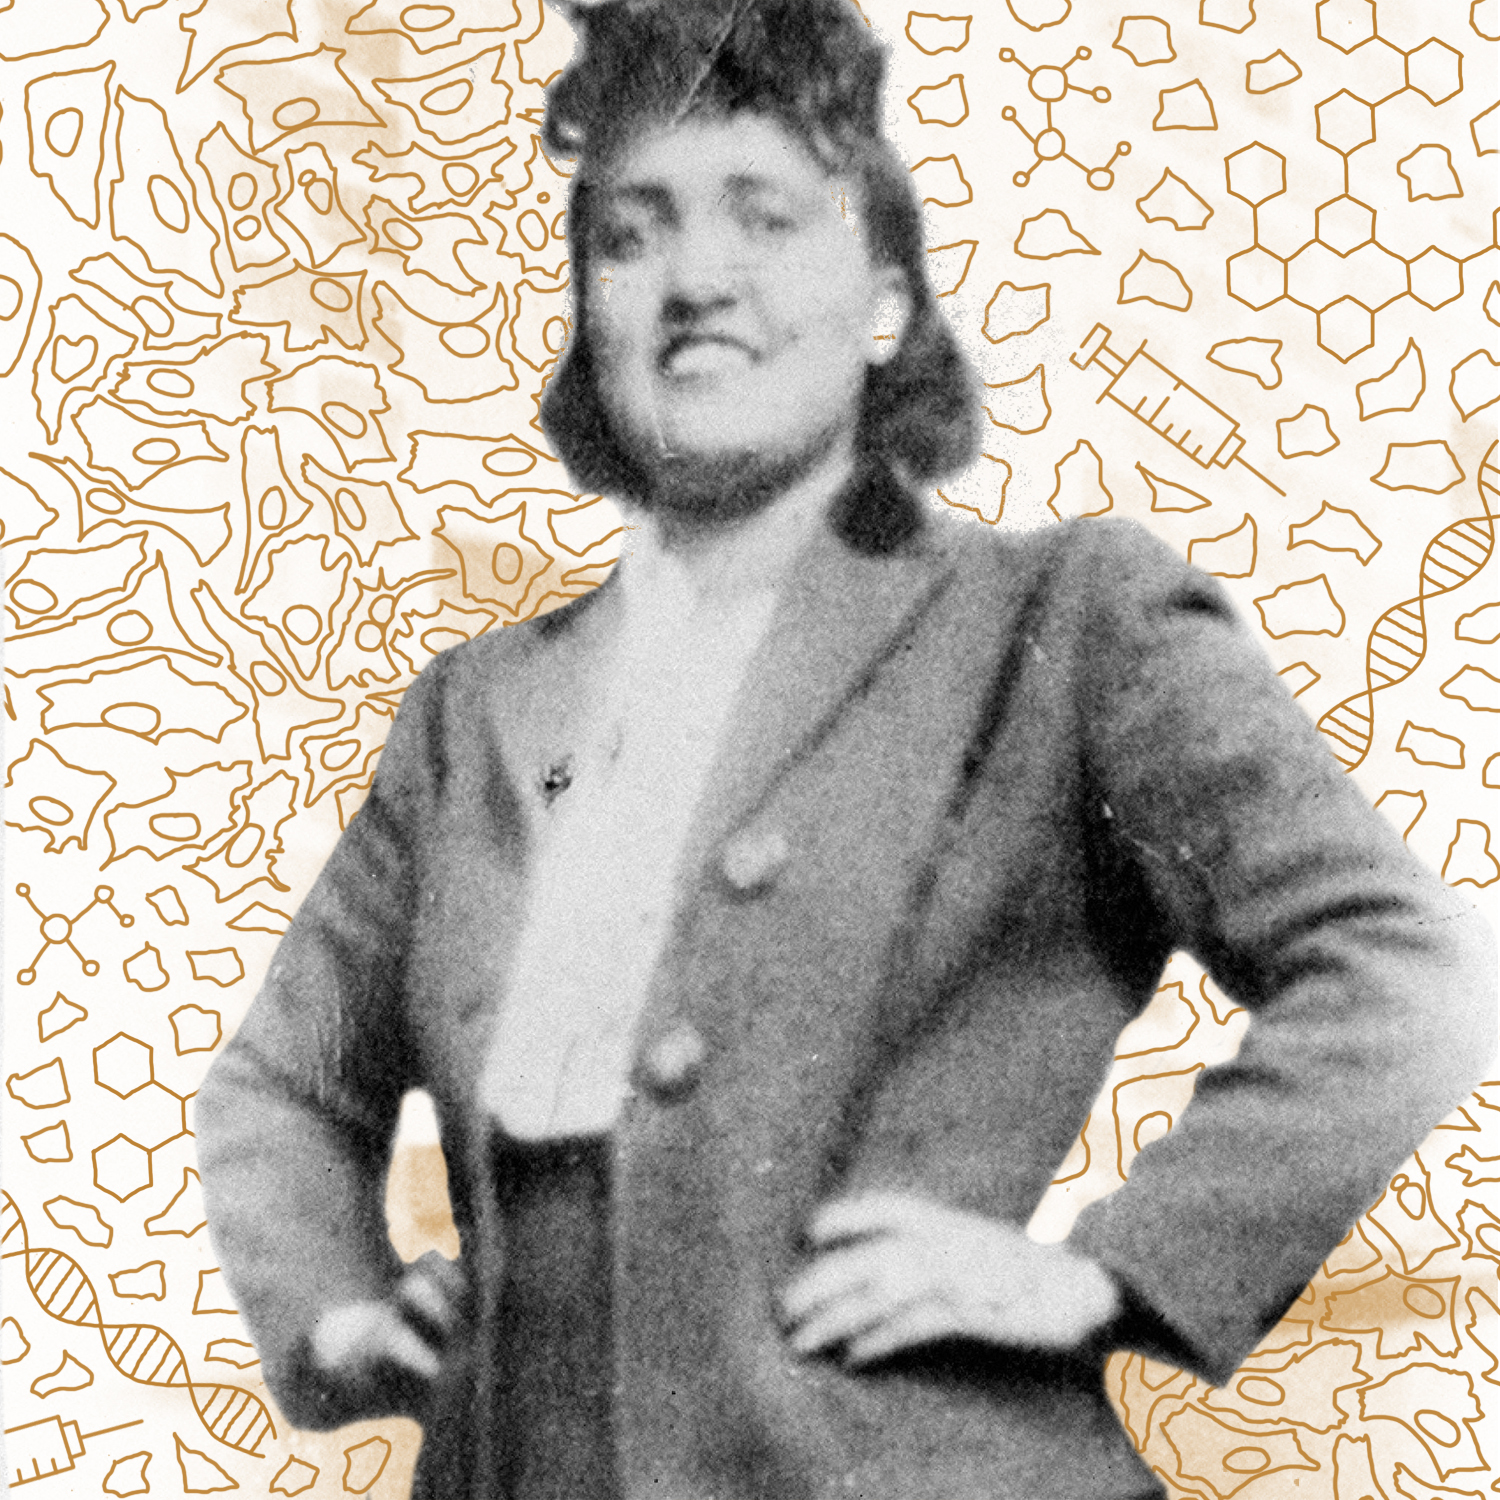 Henrietta Lacks   Henrietta was a black tobacco farmer who was diagnosed with cervical cancer at 30. Without her knowing, her tumor was sampled and sent to scientists at Johns Hopkins. Much to the scientists' surprise, her cells never died. Henrietta's immortal cells were integral in developing the polio vaccine, and were used for cloning, gene mapping, and in vitro fertilization.